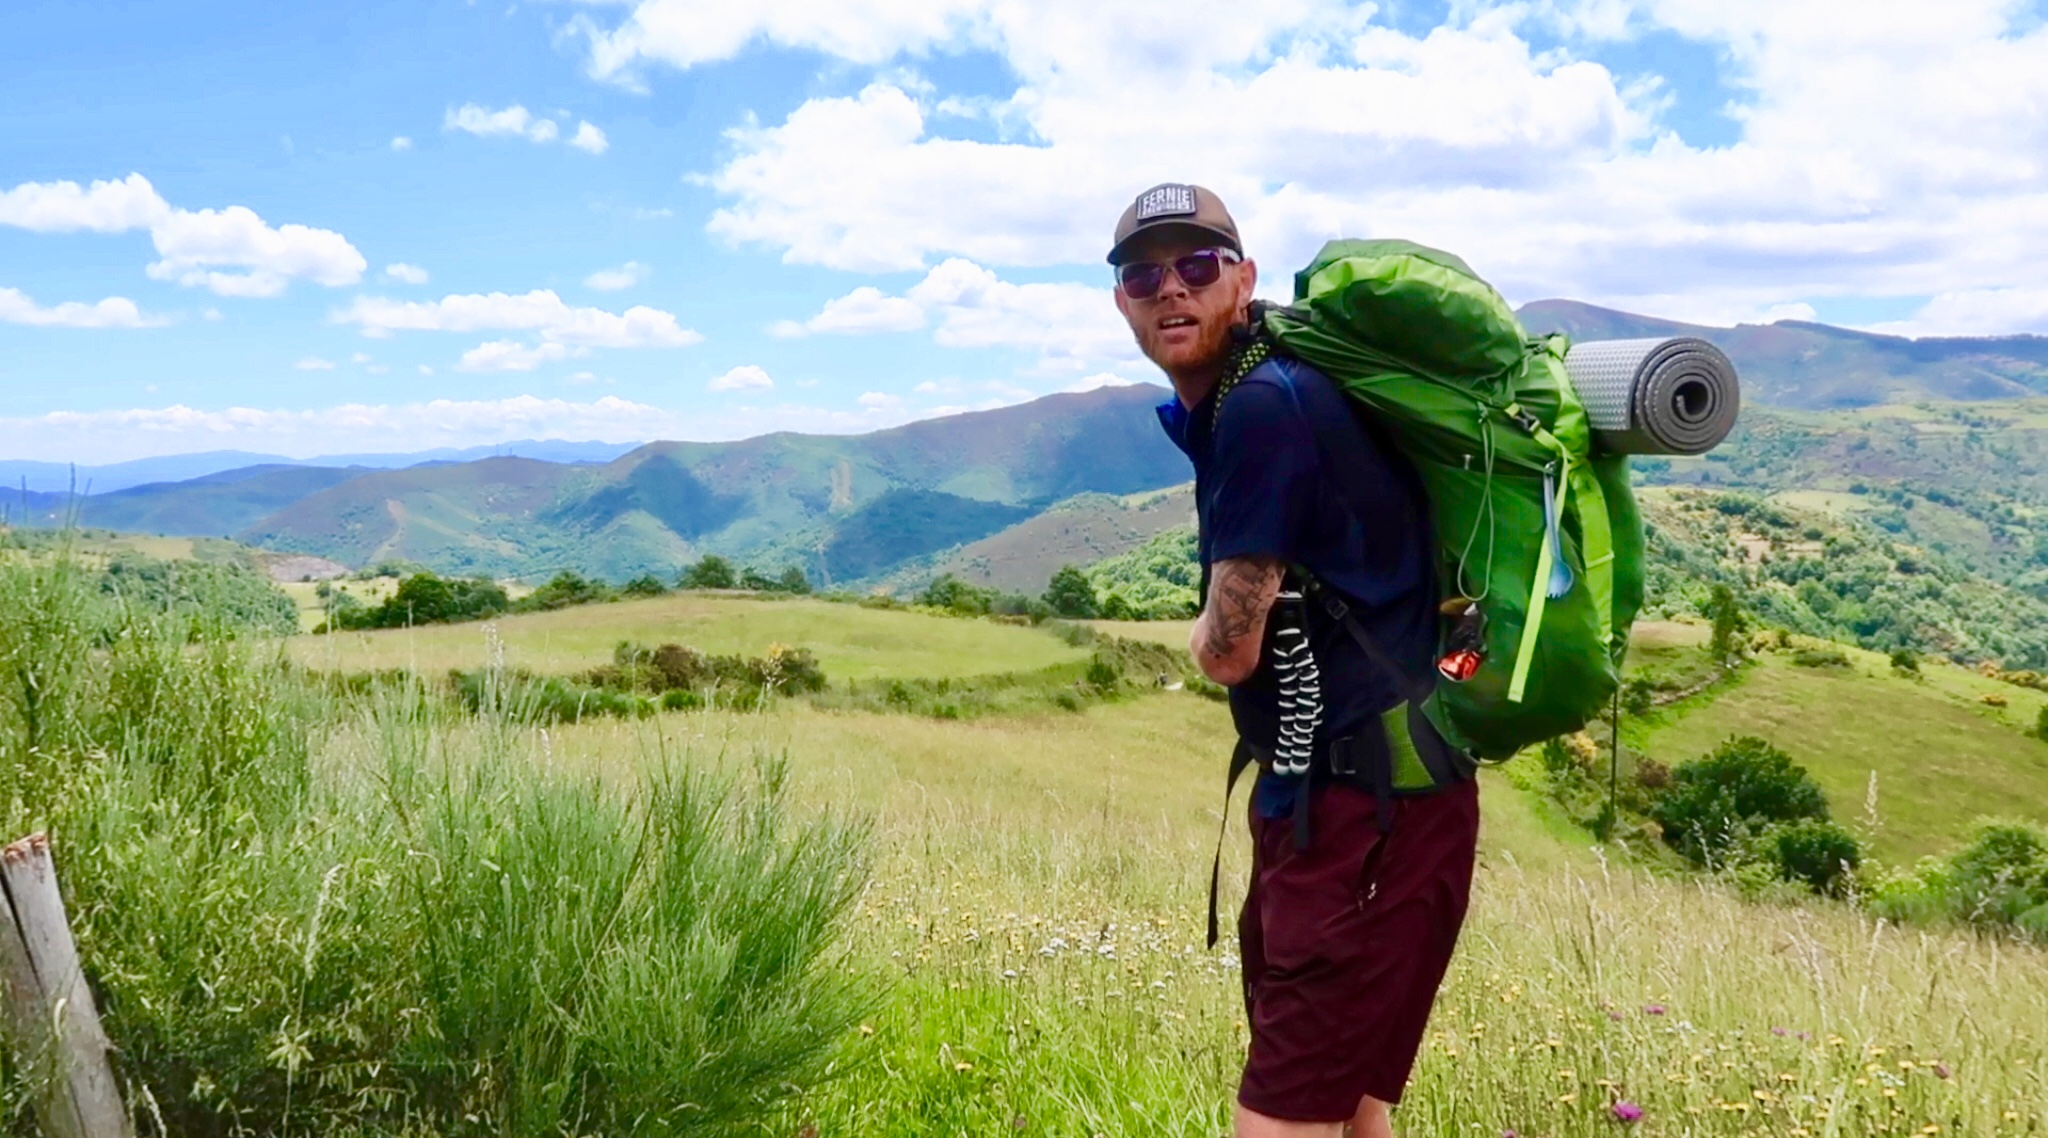 b14cddadb 7 Quick Tips for Walking the Camino de Santiago